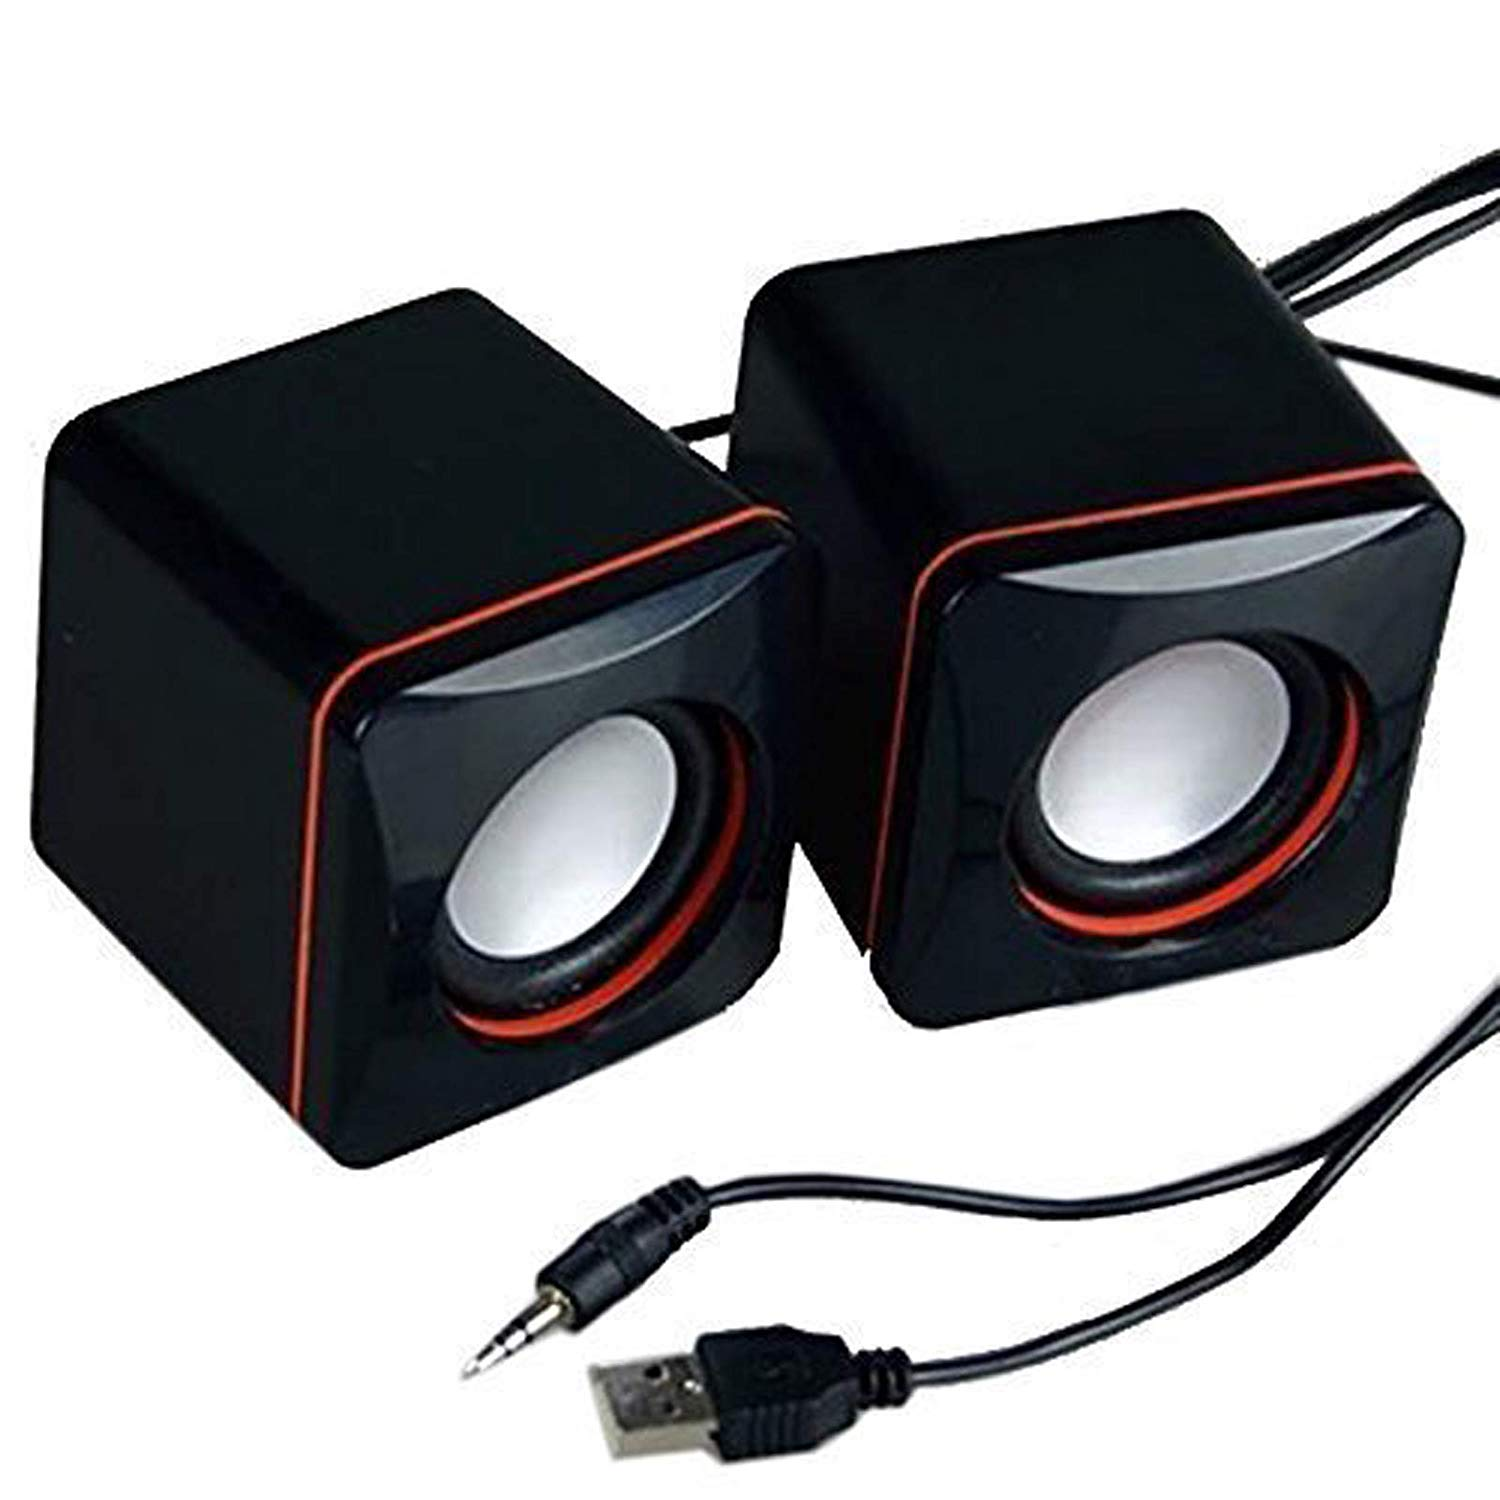 Portable Computer Speakers USB Powered Desktop Mini Speaker Bass Sound Music Player System Wired Small Speaker  black